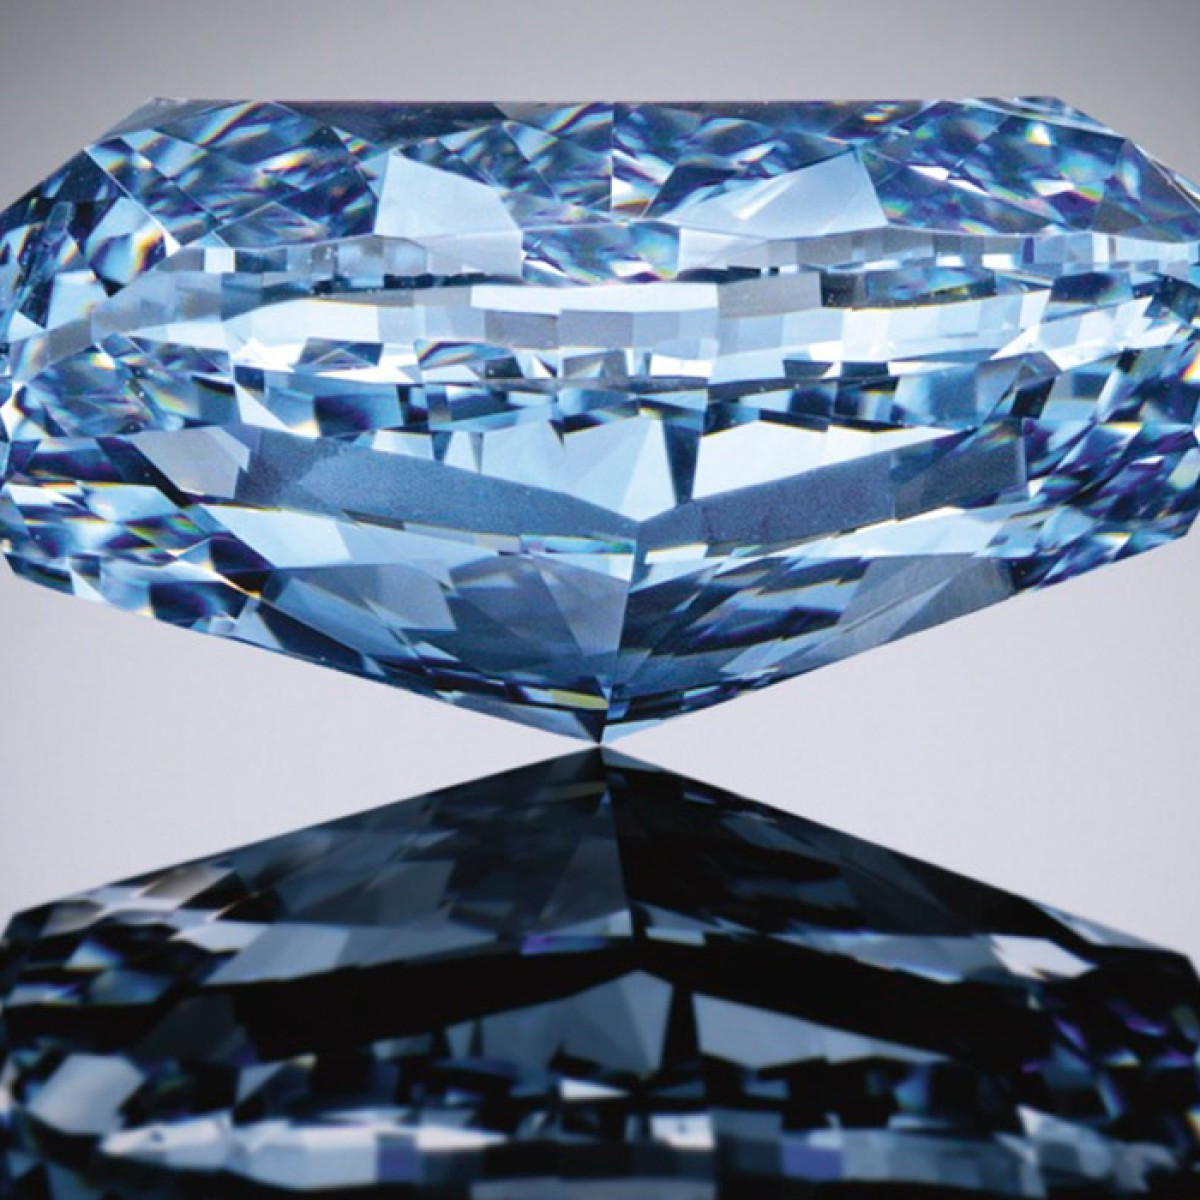 expensive vase brands of the rarest of the rare multimillion dollar blue diamonds pertaining to the rarest of the rare multimillion dollar blue diamonds jewellery sothebys